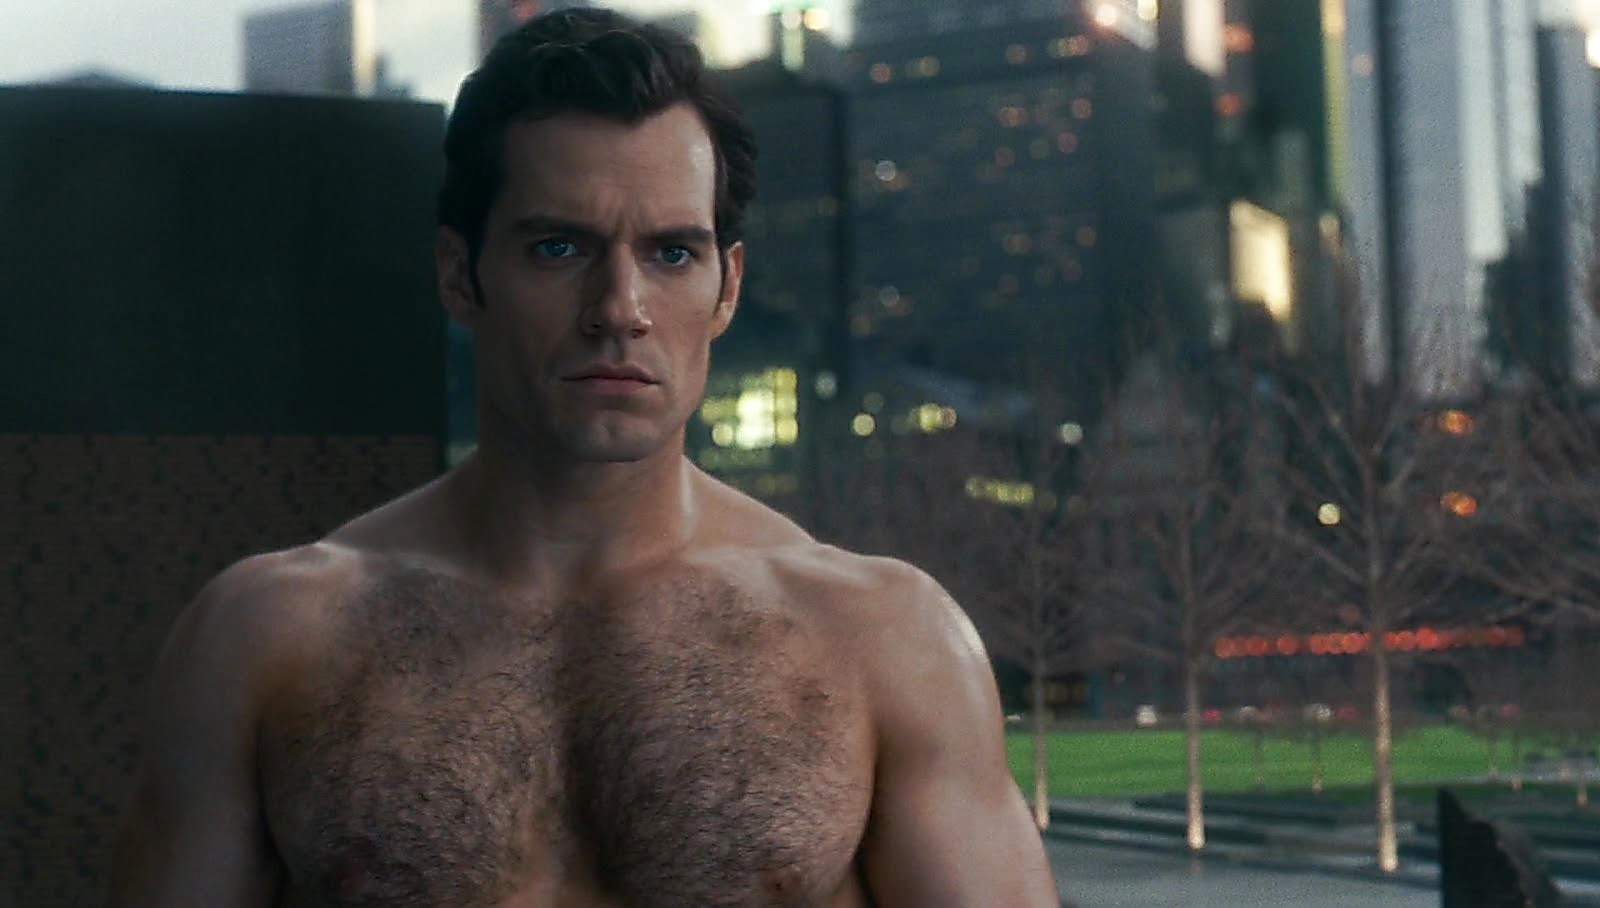 Henry Cavill Justice League 2018 02 13 1